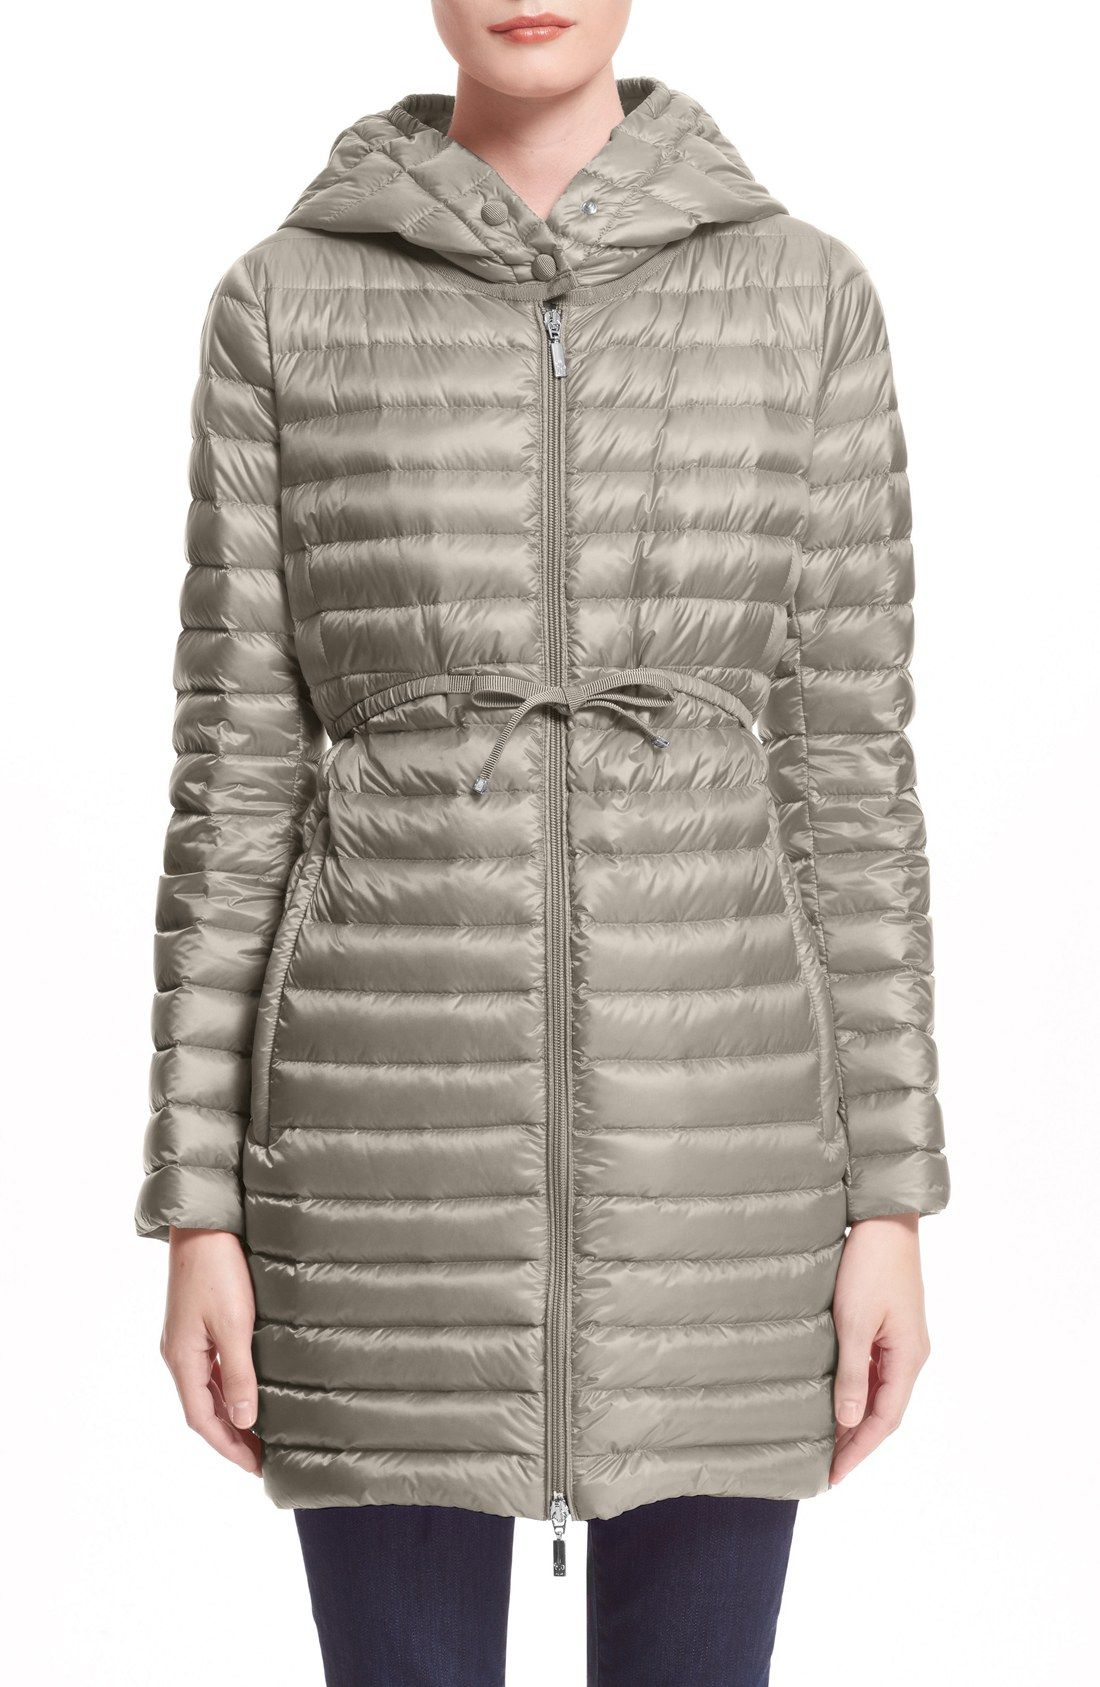 moncler barbel jacket reviews